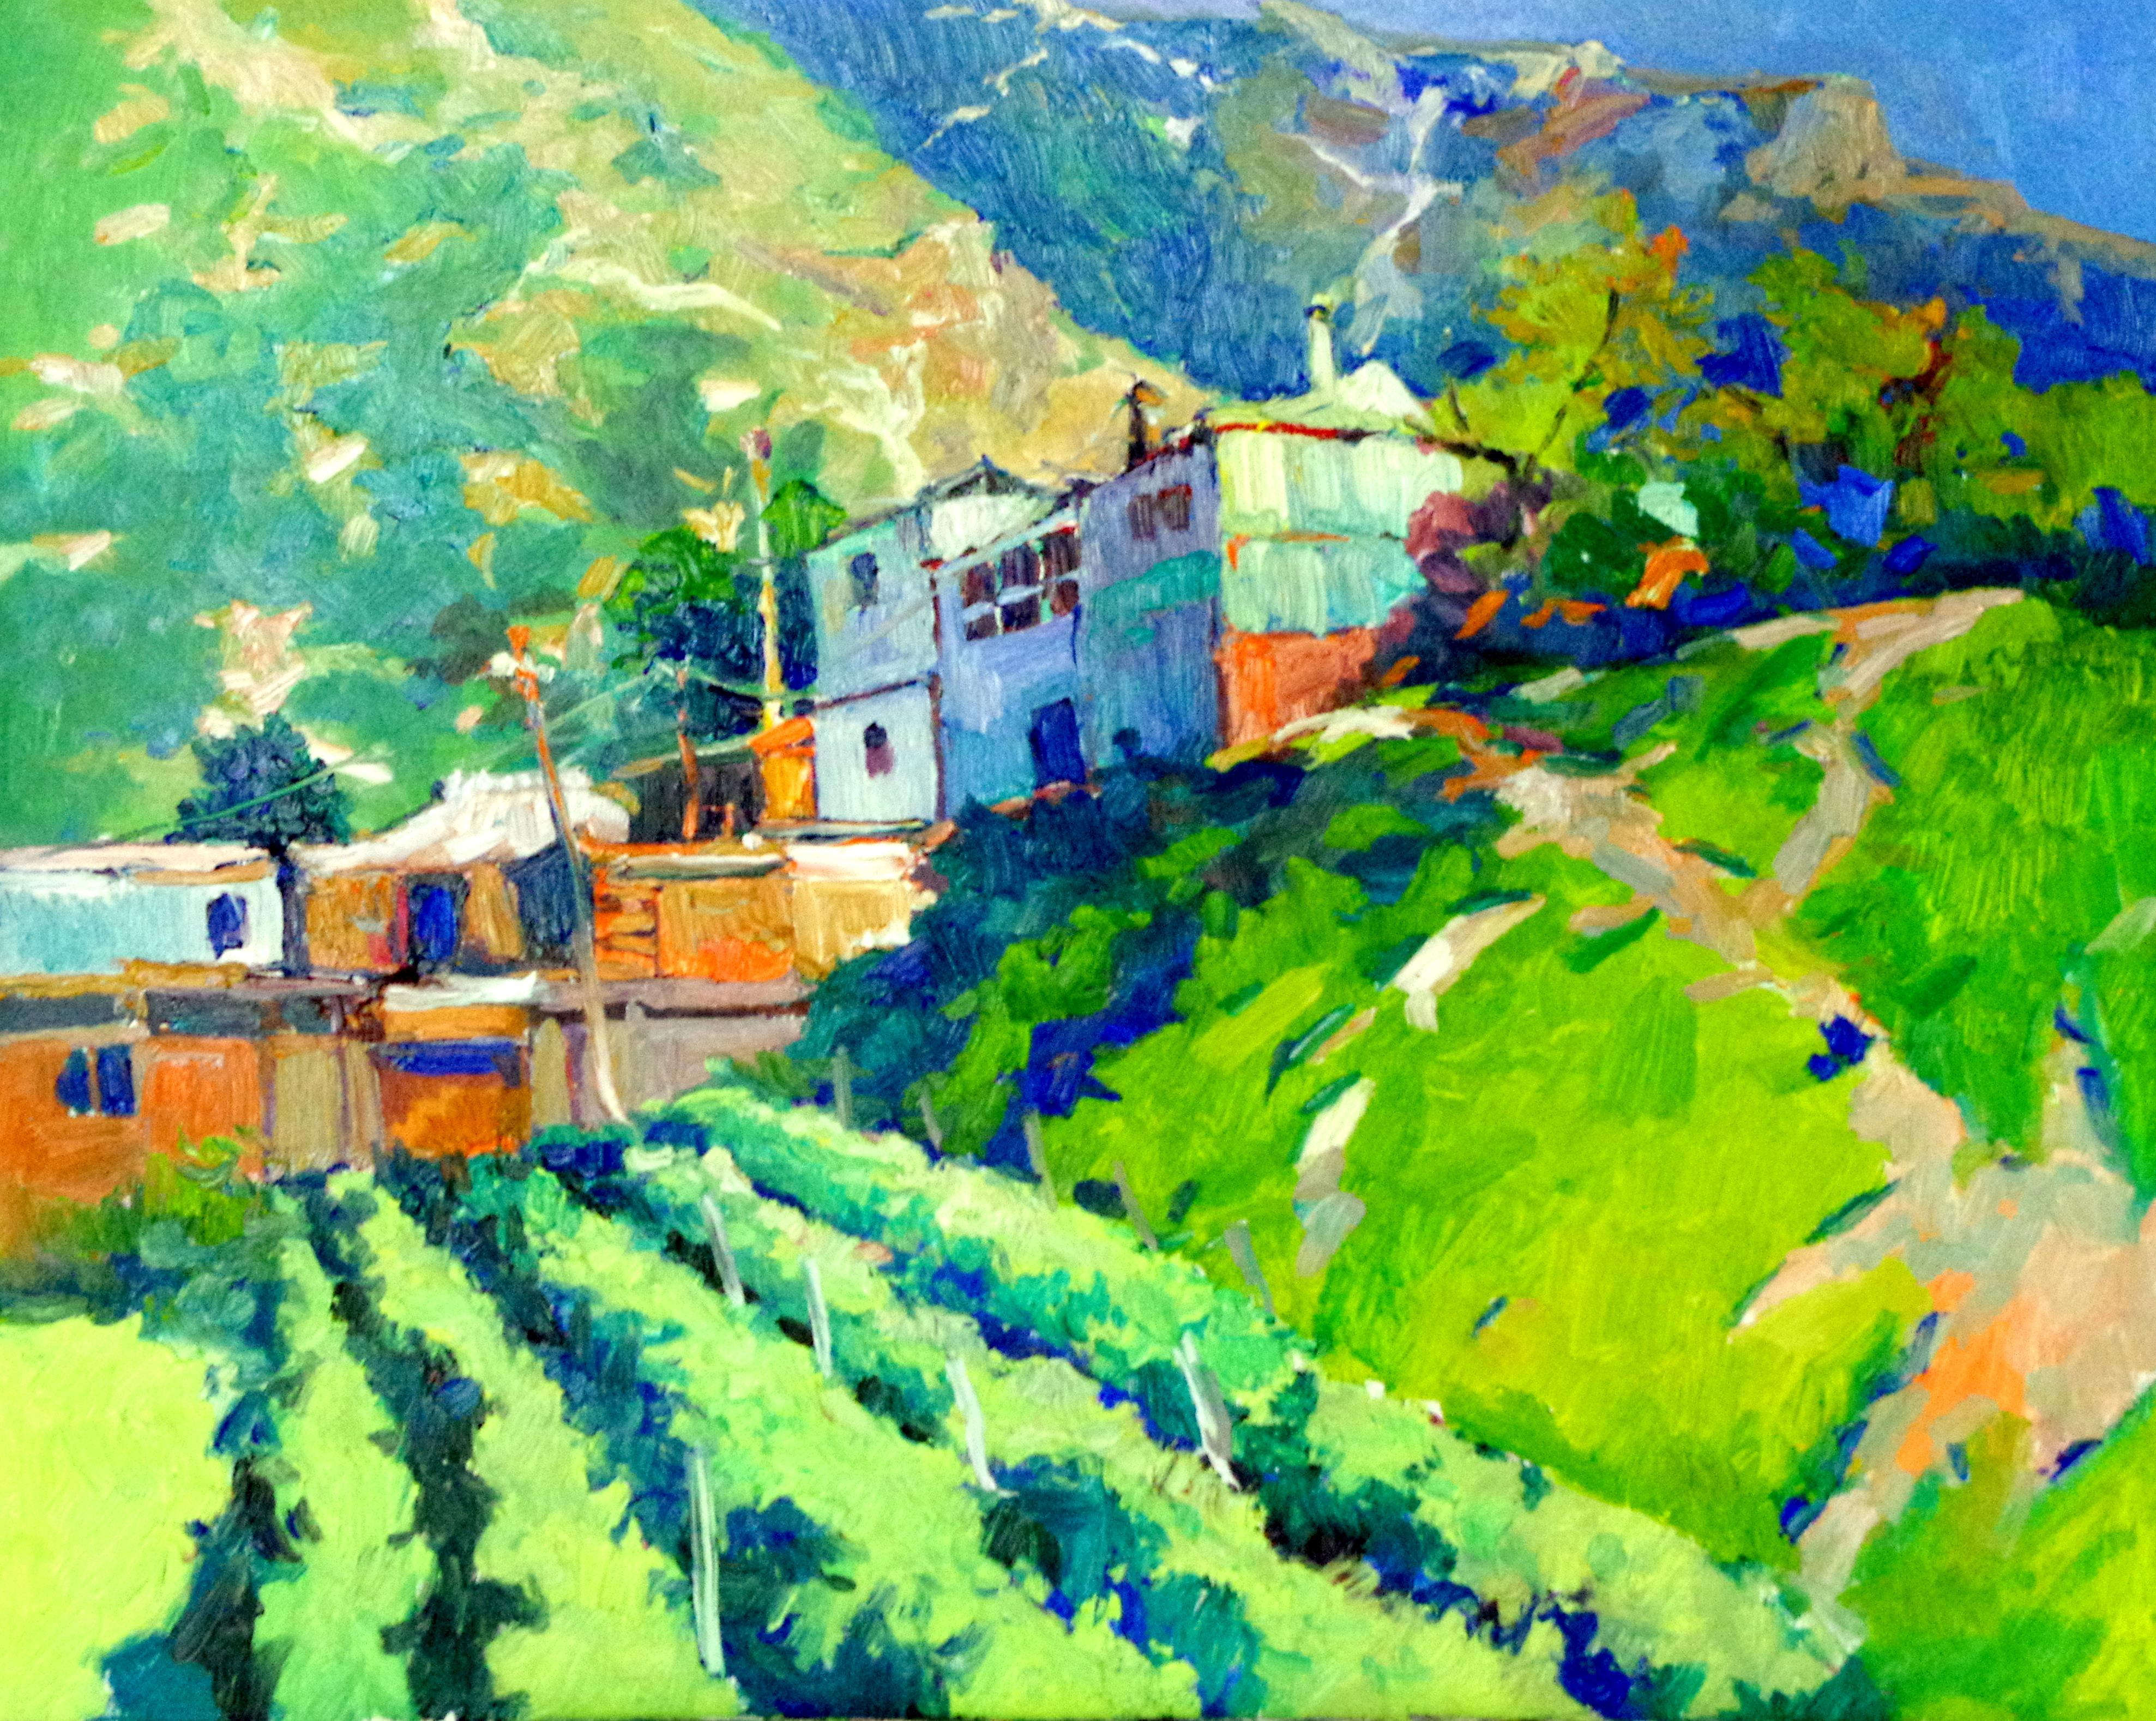 Farm Houses in the Mountains, Green Summer Mountain Landscape